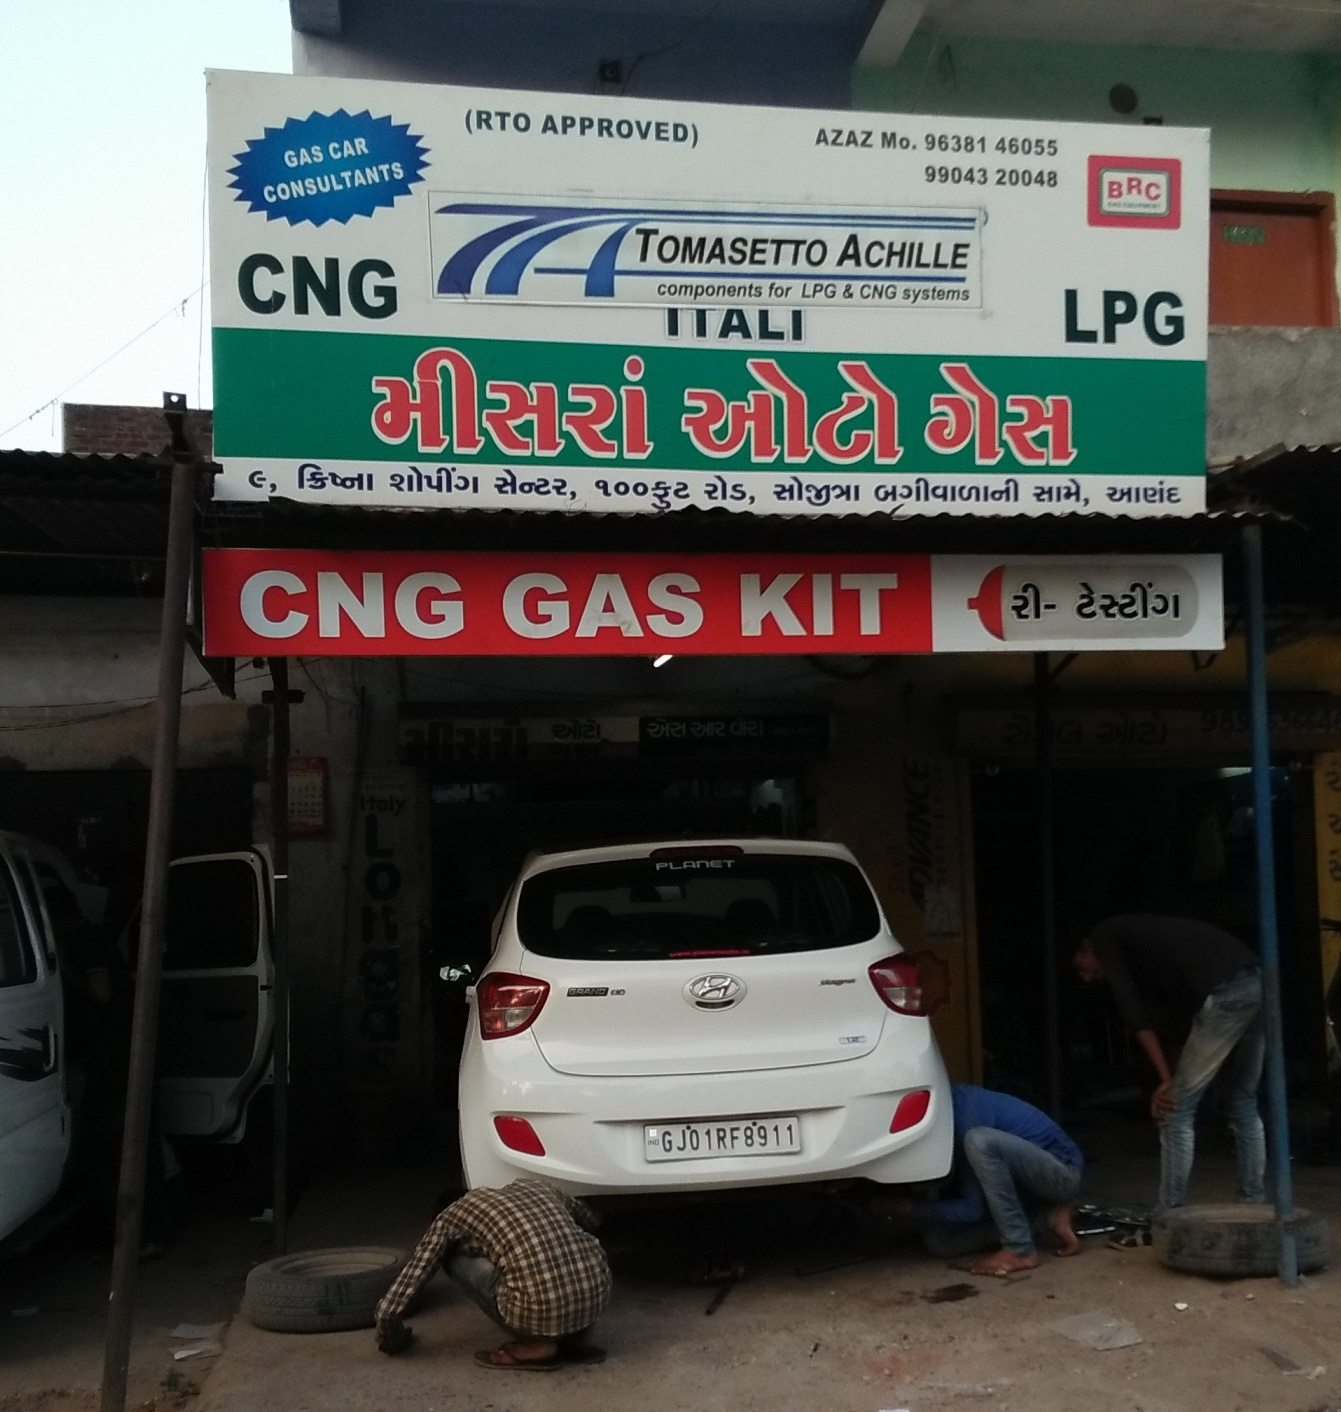 Misra Auto Gas - Leader in CNG - Gujarat - CNG Kit fitting